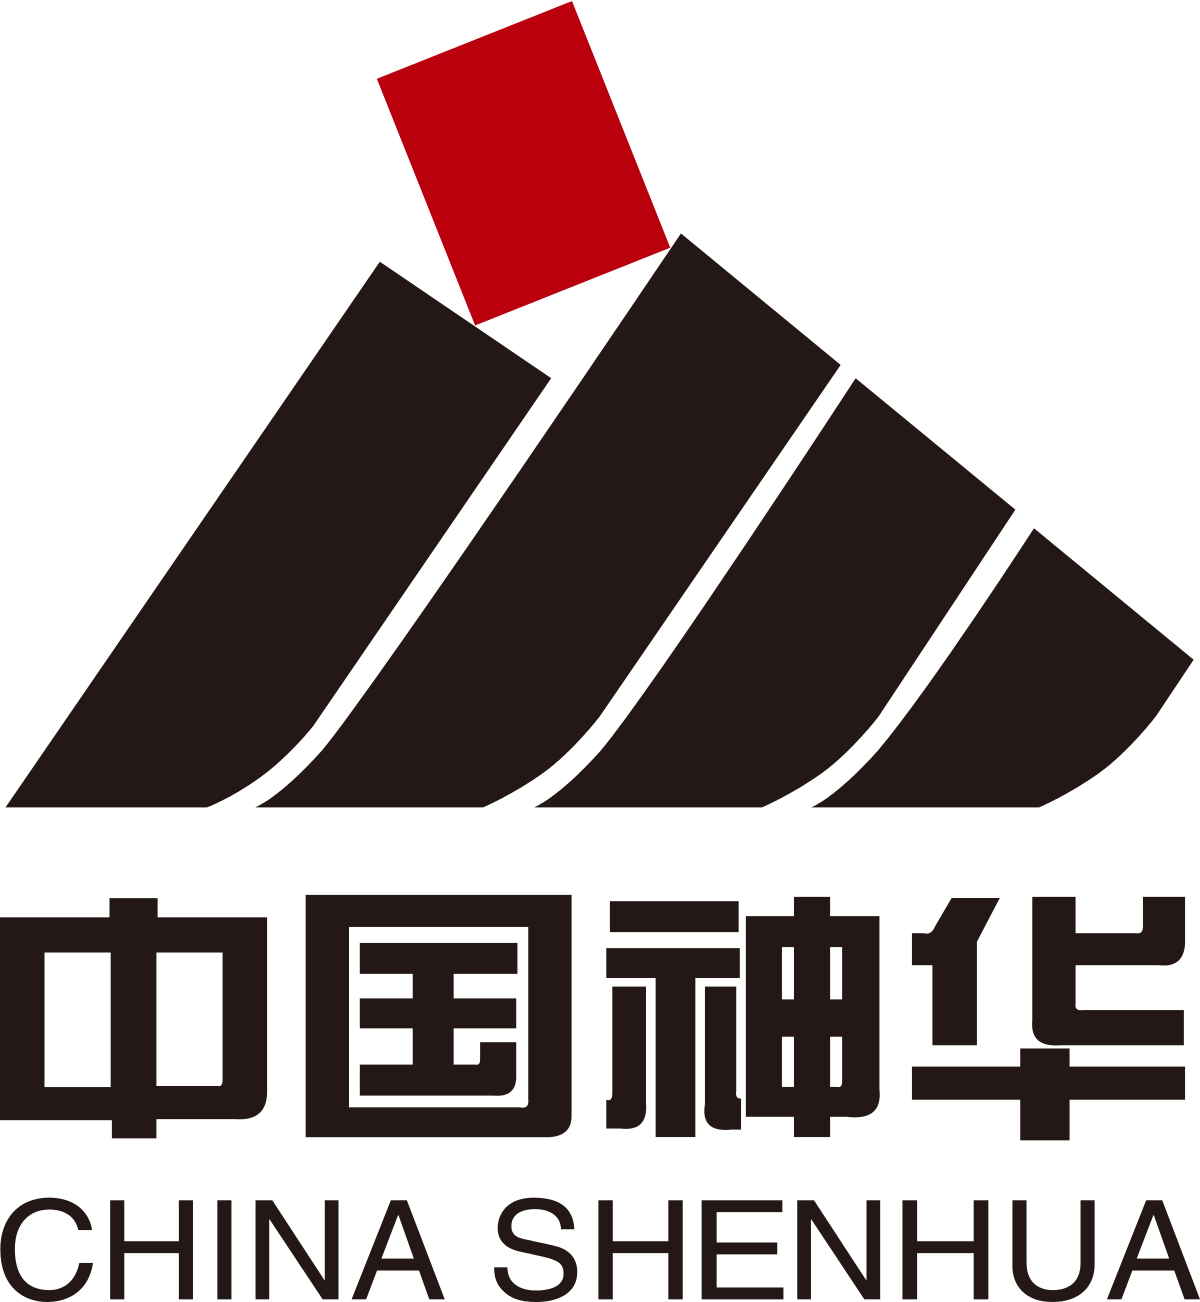 LOGO SHENHUA GROUP CHINA